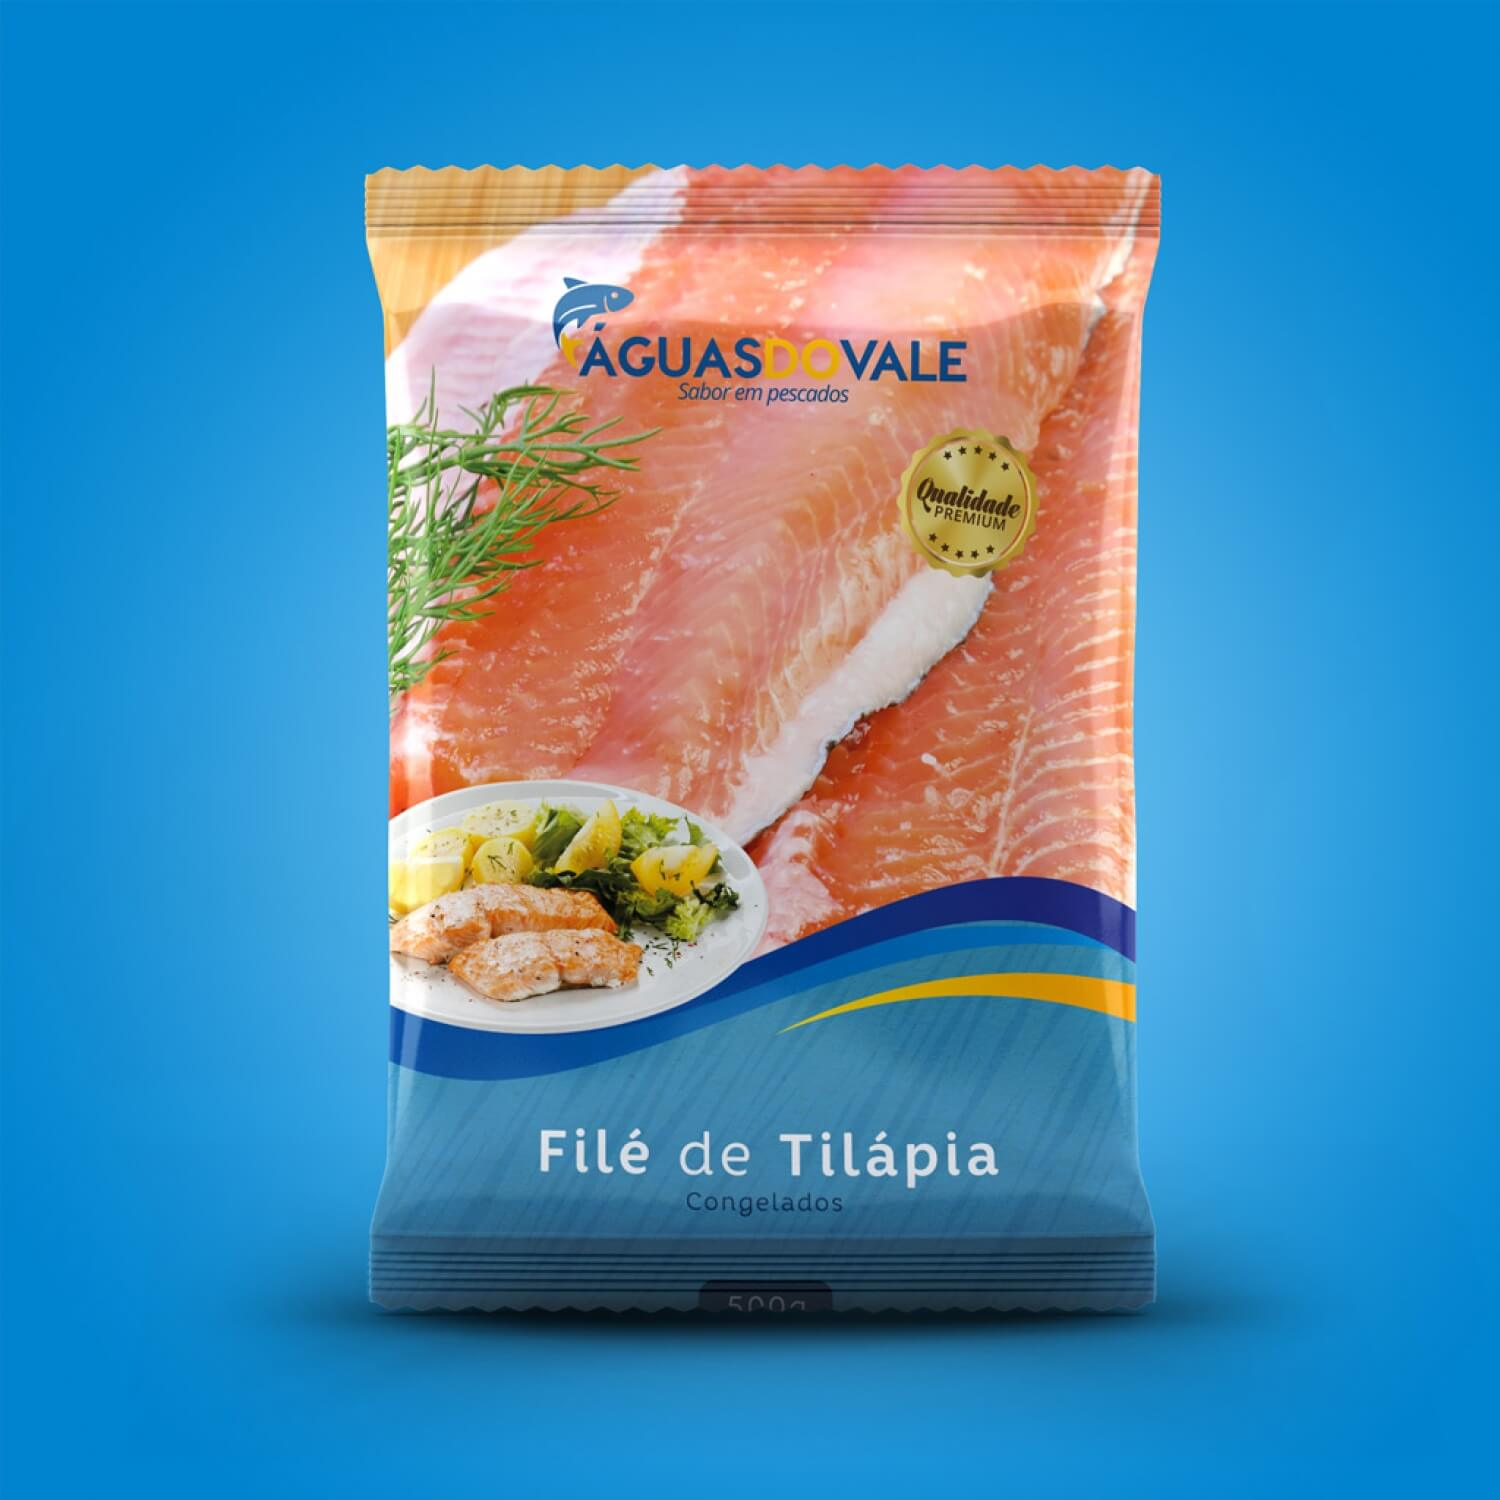 Design – Águas do Vale